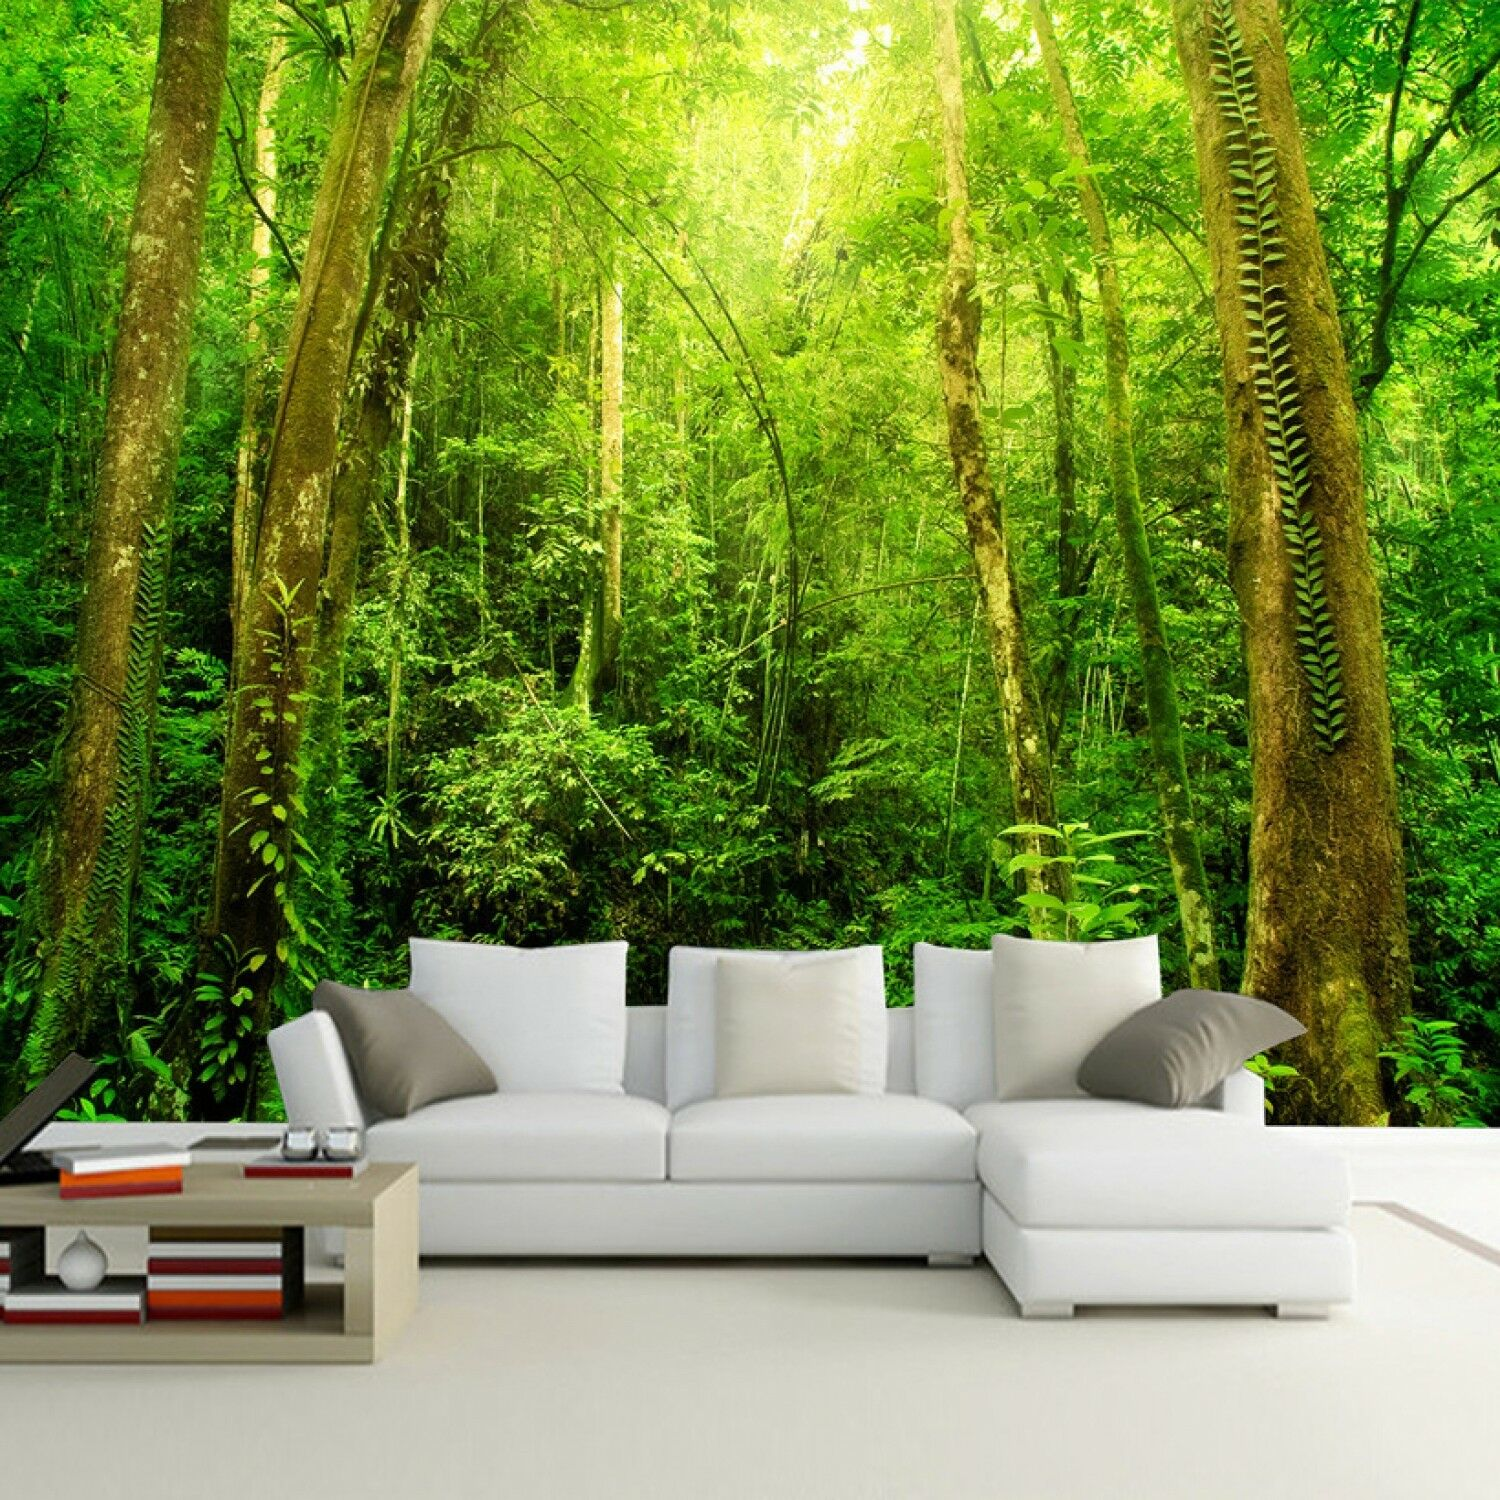 Natural Scenery 3d Hd Large Wall Mural Forest Photo Wallpaper Living Room Art Ebay